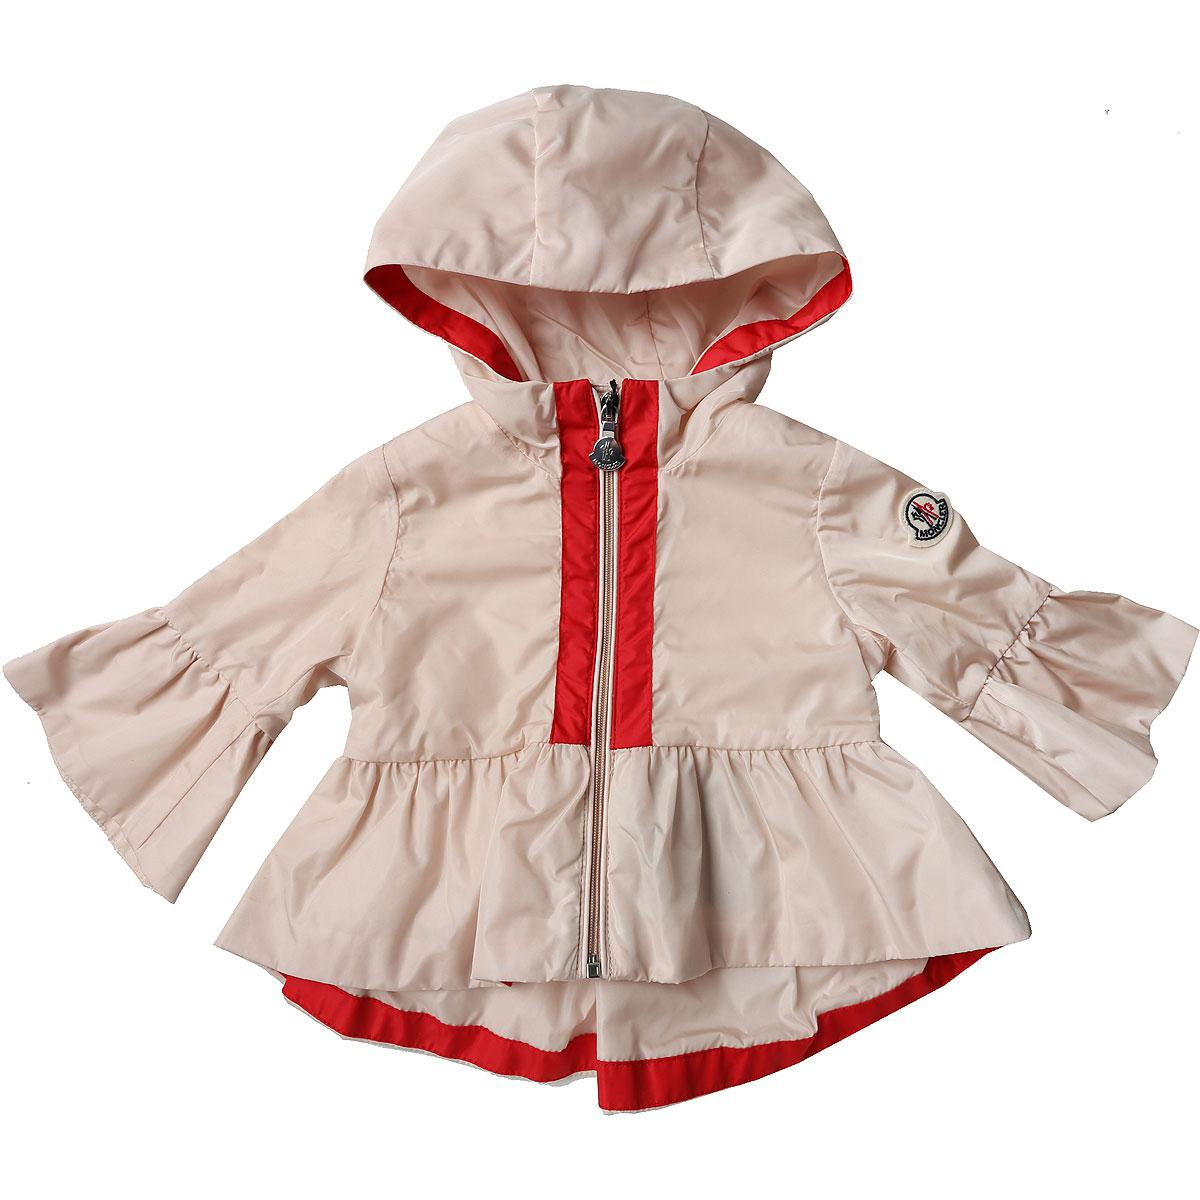 7578bbda9 Lyst - Moncler Baby Jacket For Girls On Sale in Pink